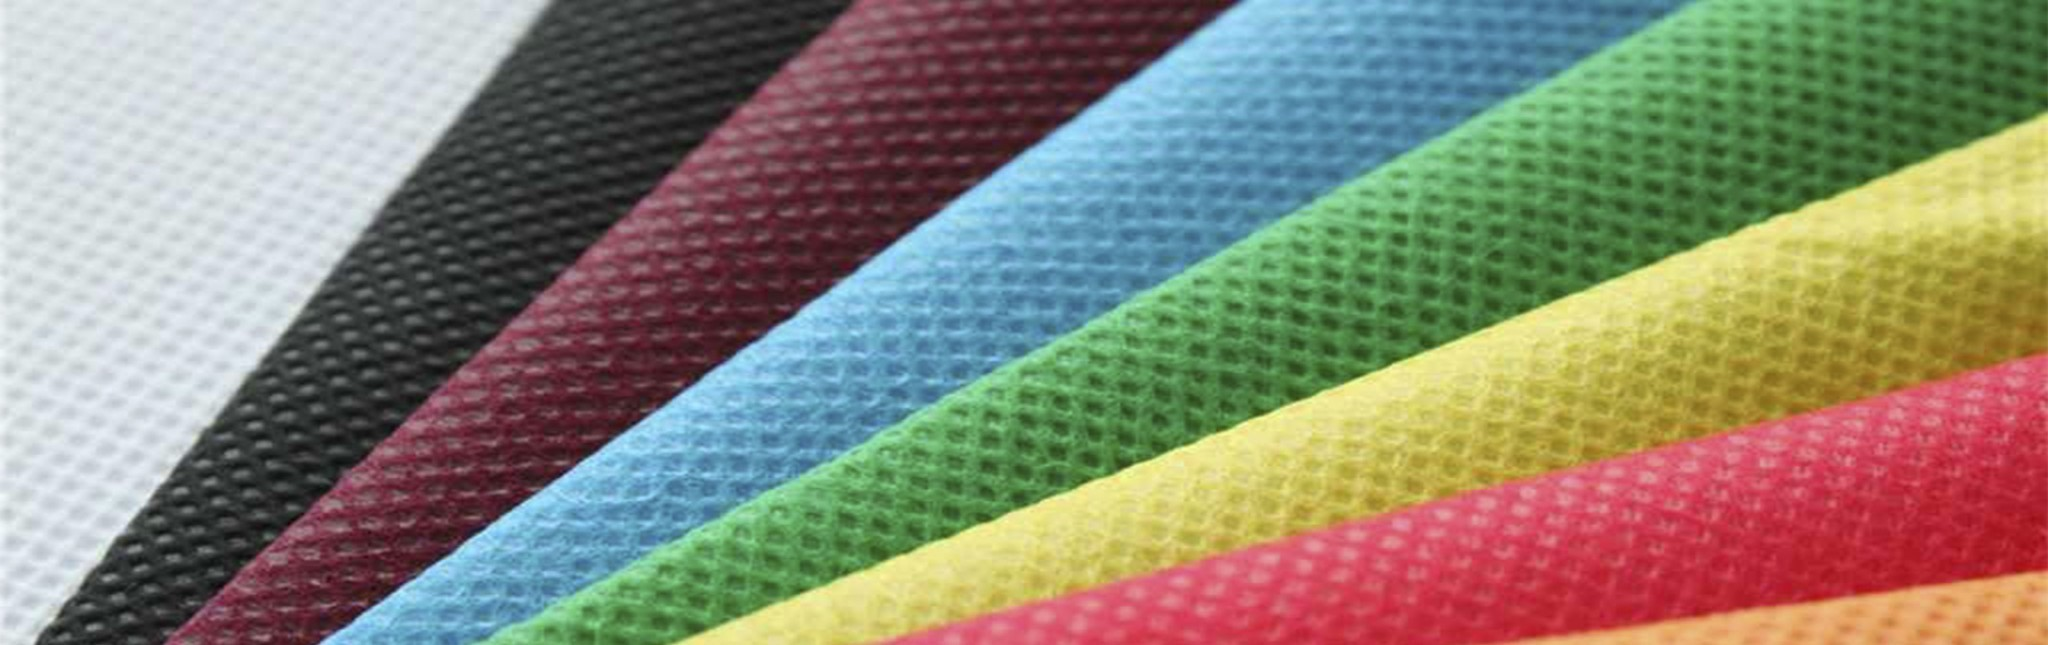 nonwoven forming